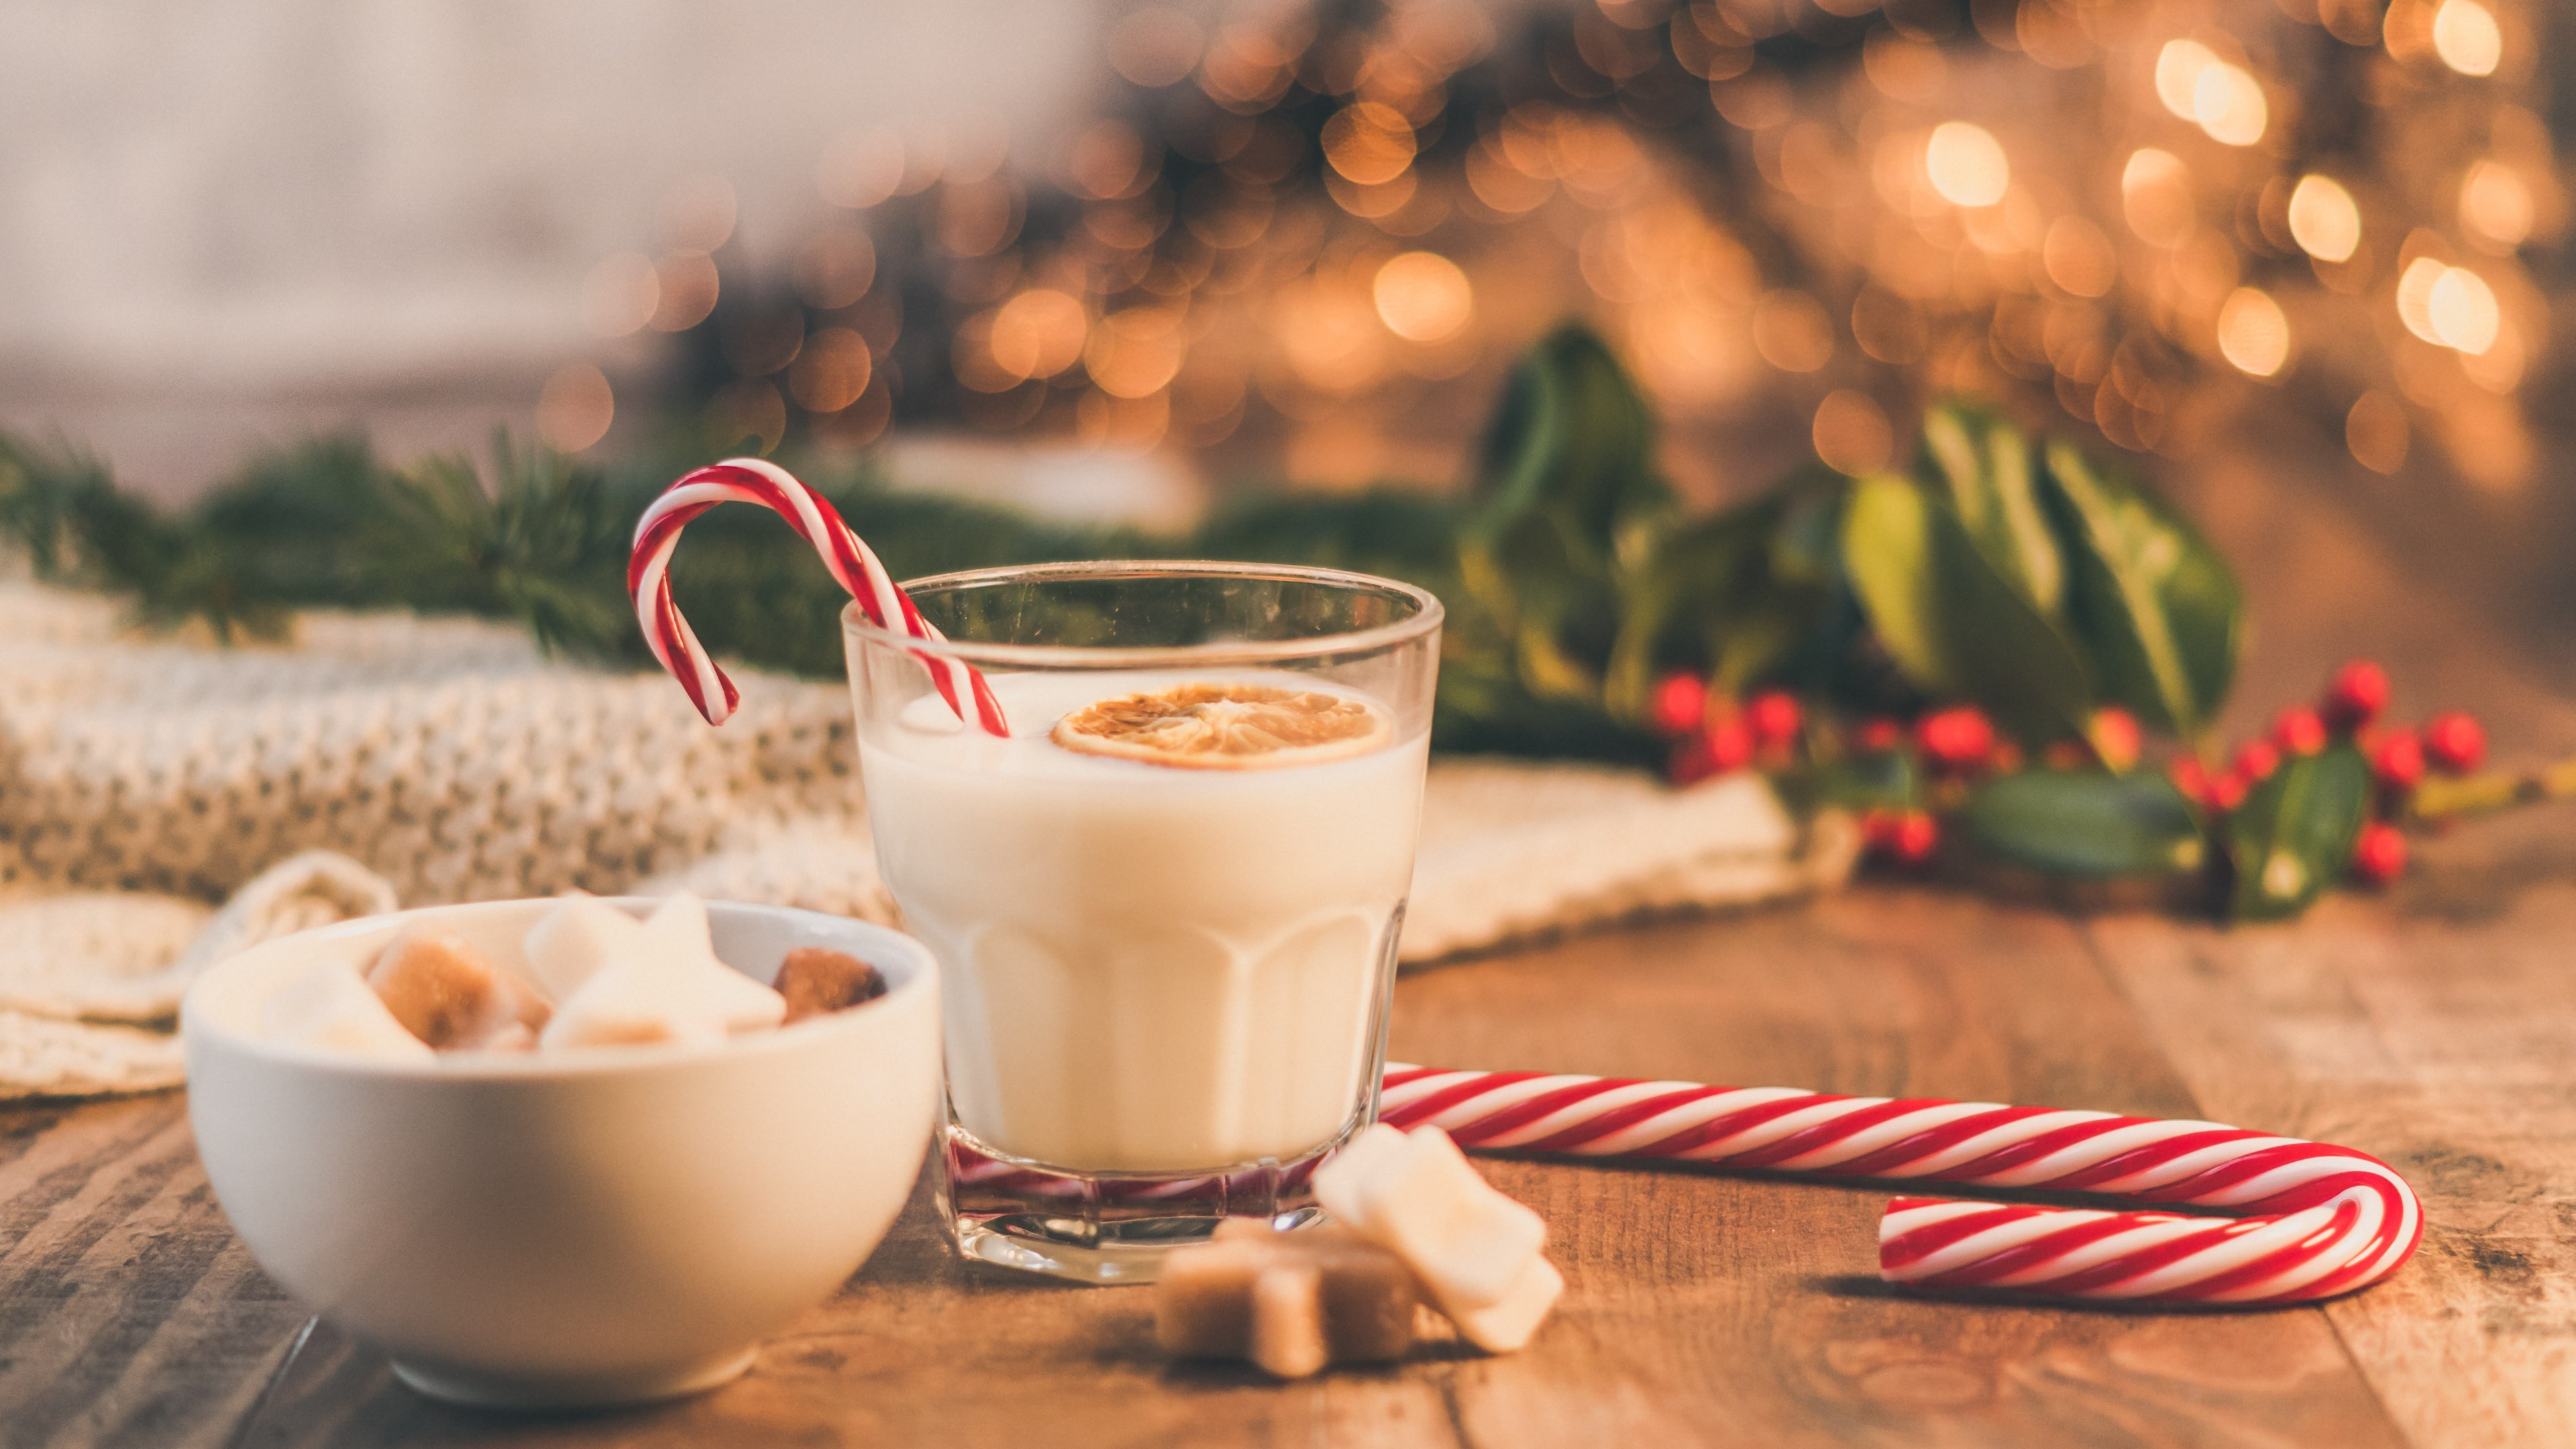 Seasonal Christmas sweets and cup of milk | 3840x2160 wallpaper